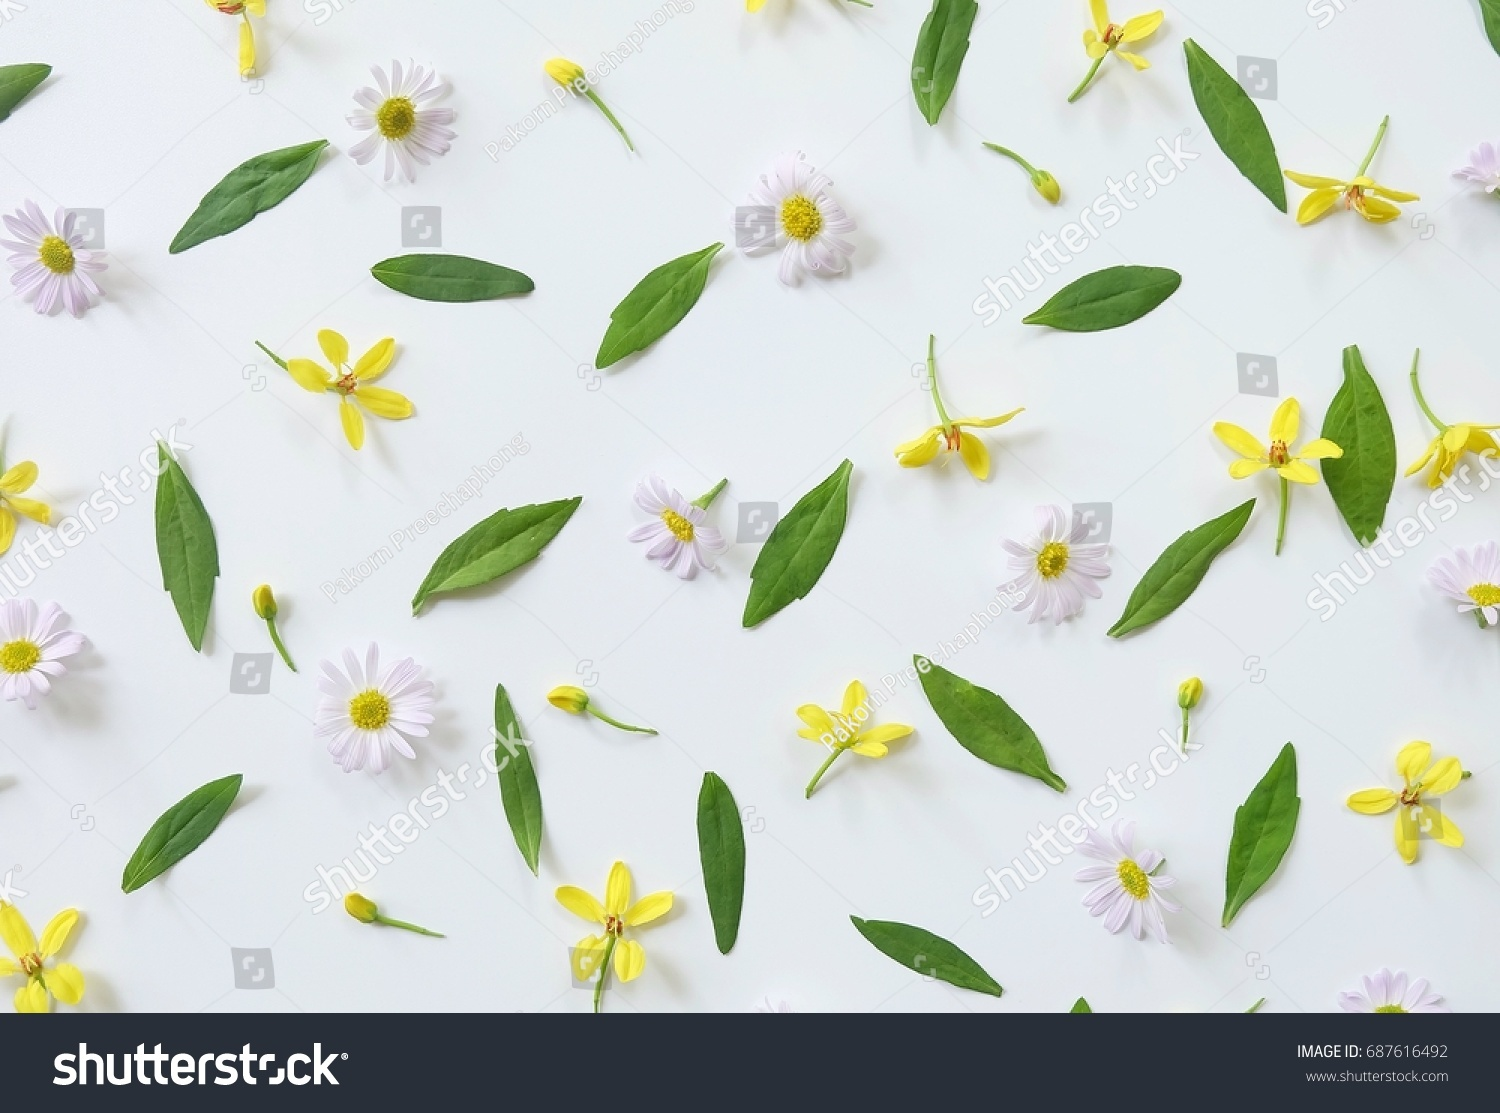 Pattern daisy flowers yellow flower leaves stock photo edit now pattern daisy flowers yellow flower and leaves on white background flat lay top izmirmasajfo